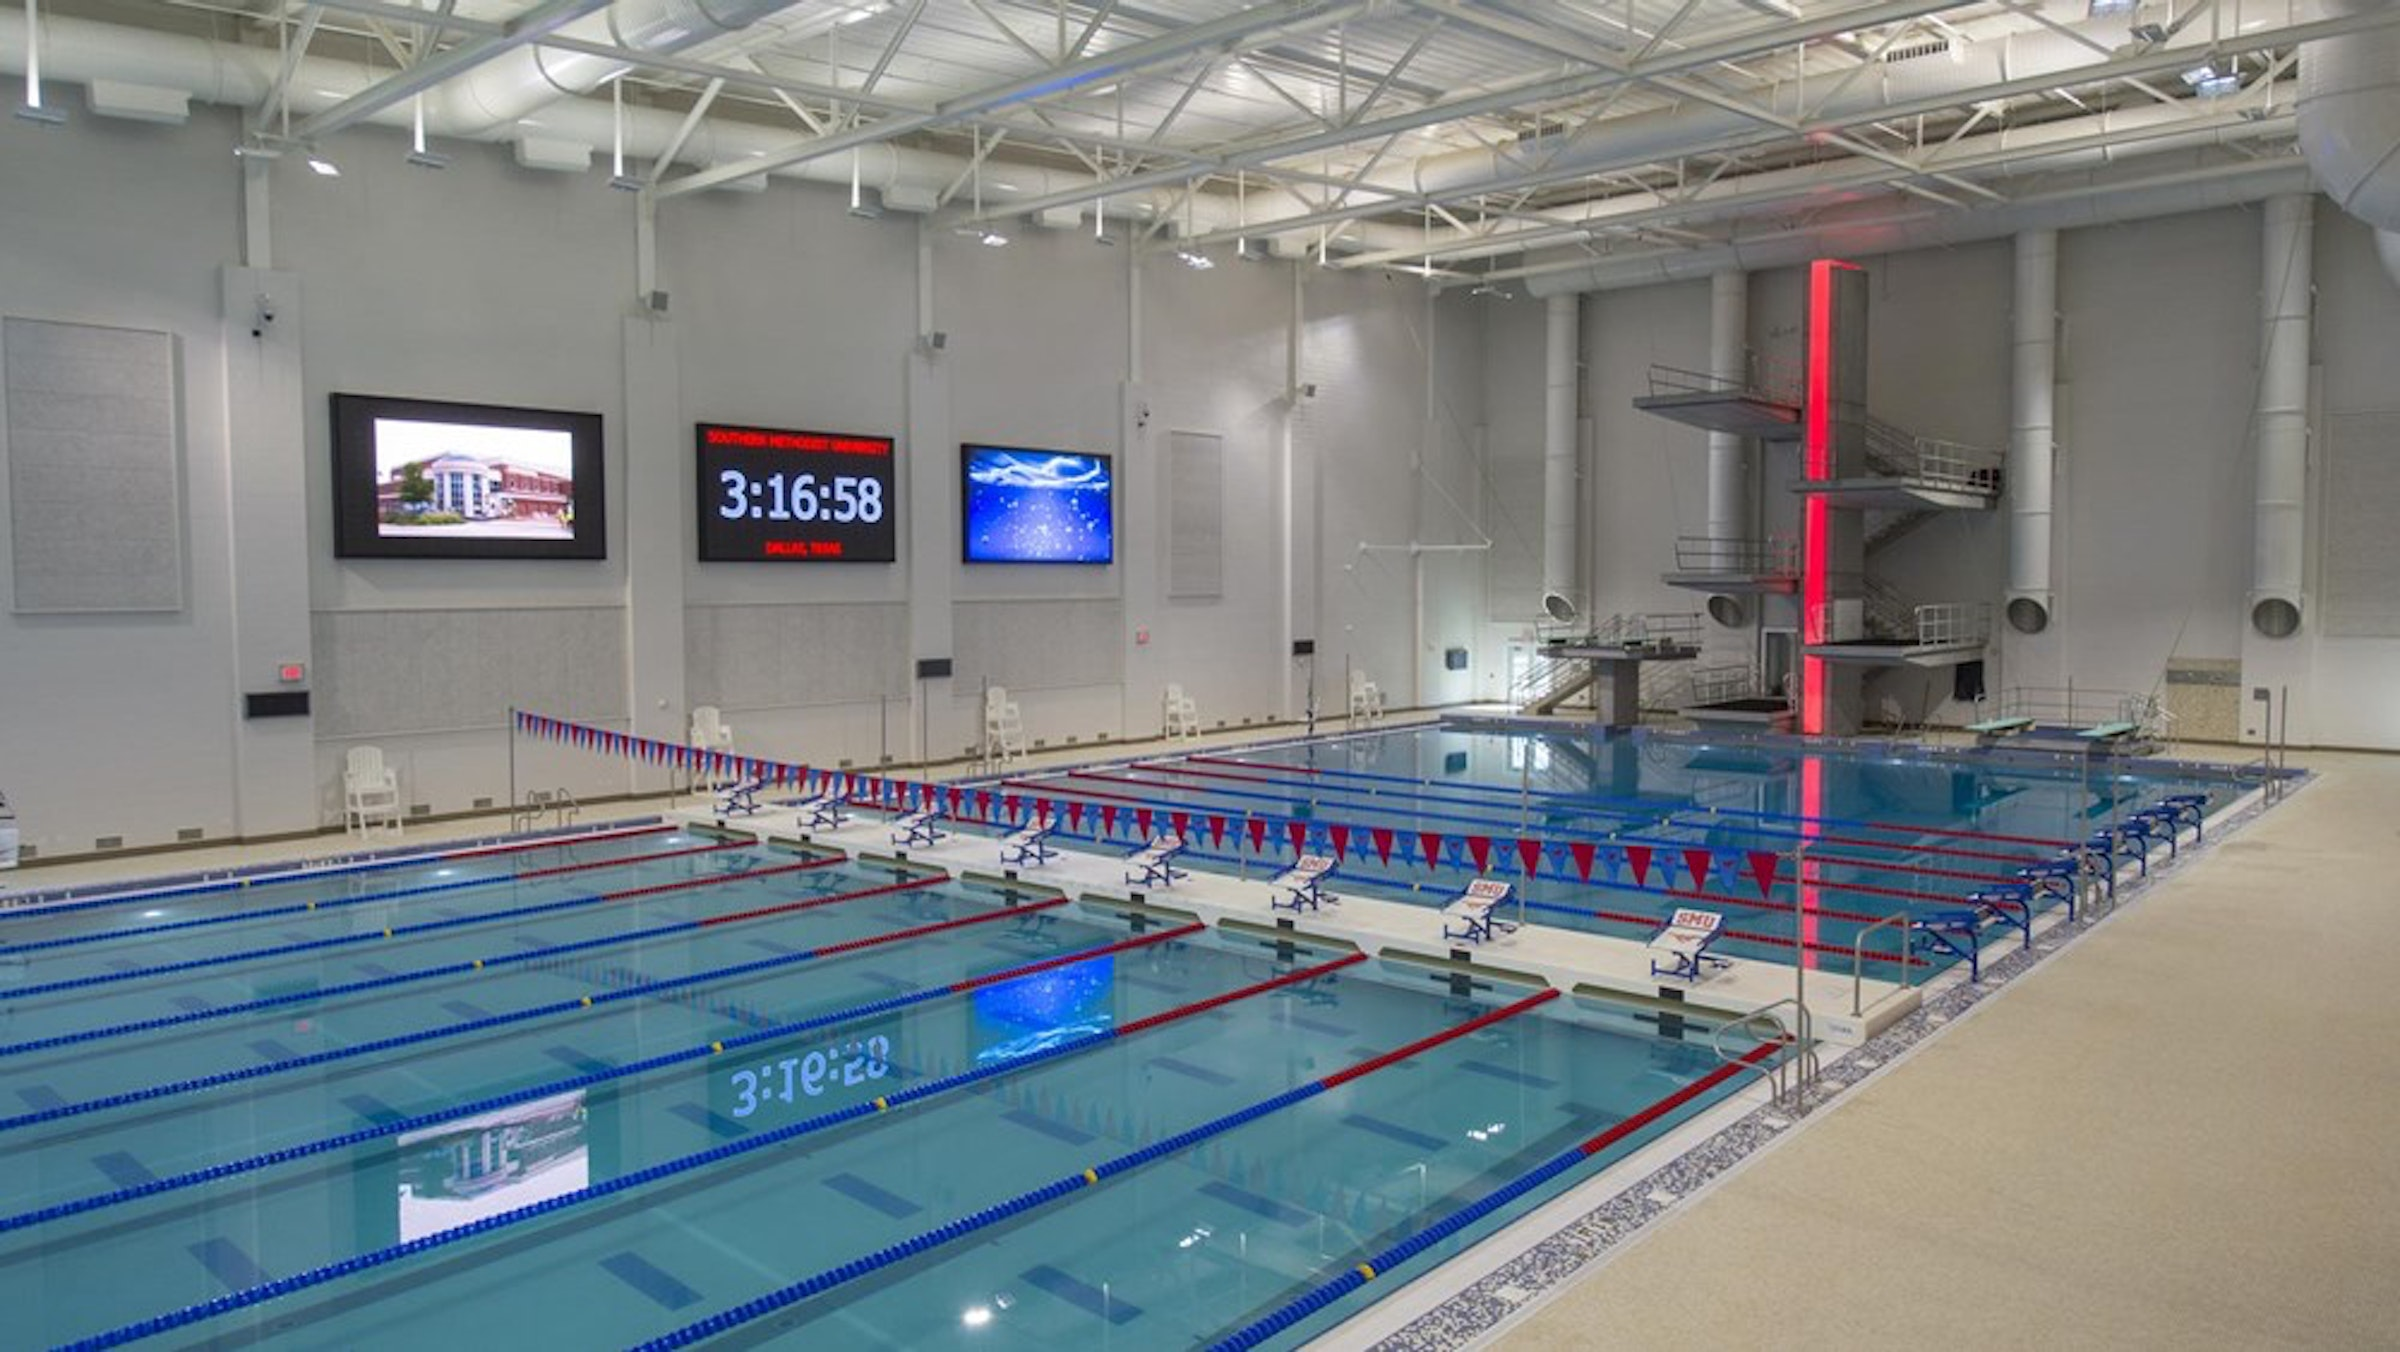 SMU - Robson & Lindley Aquatic Center in Beyond Dallas